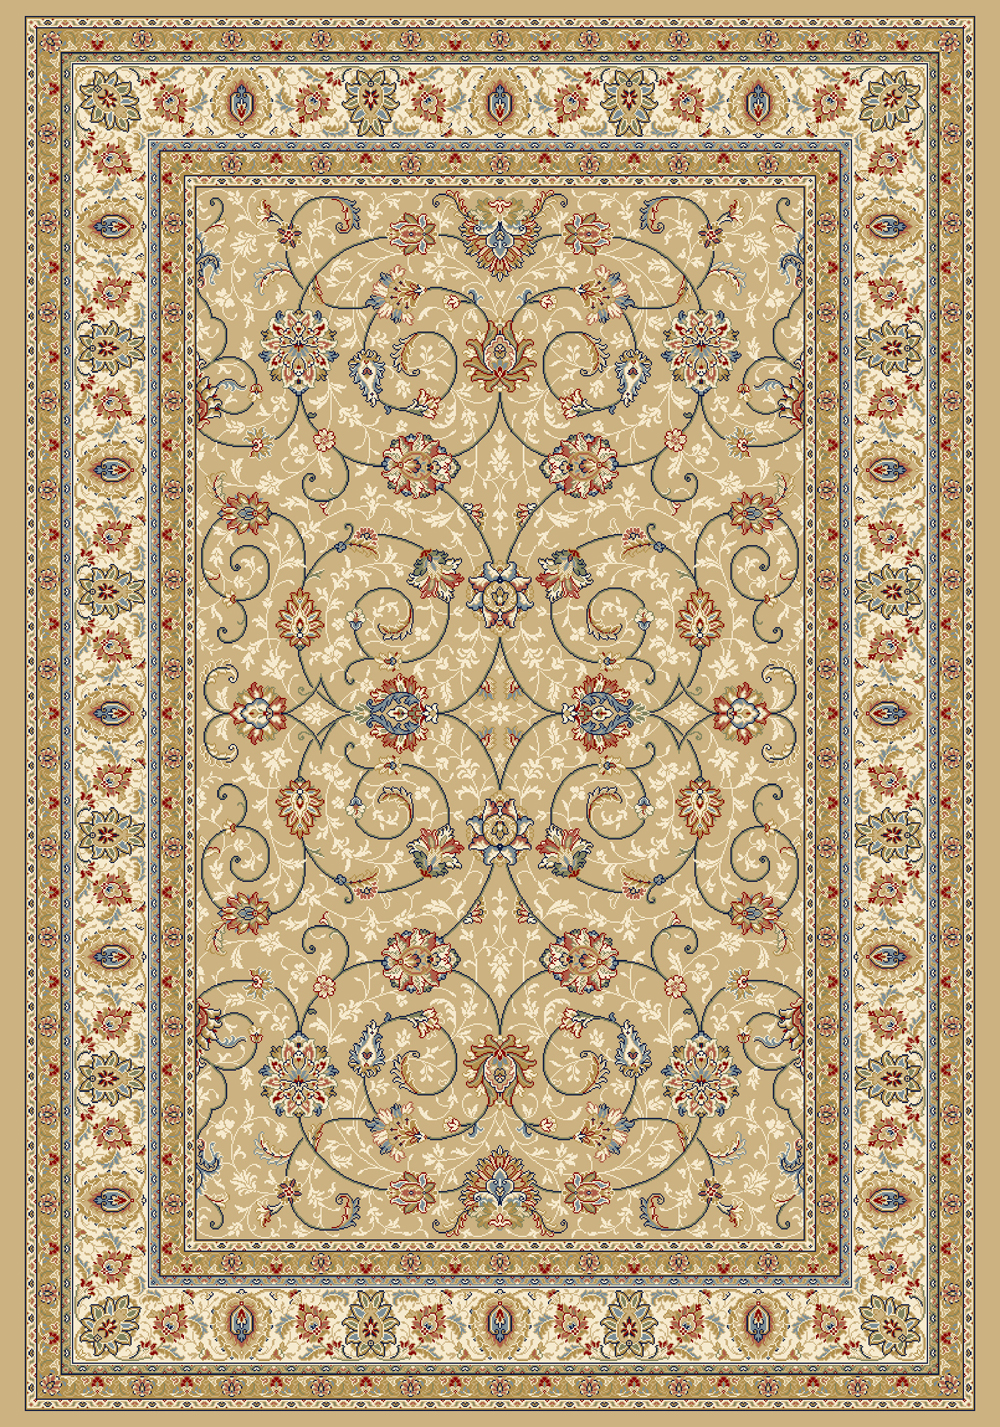 Dynamic ANCIENT GARDEN 57120 LT GOLD/IVORY Rug